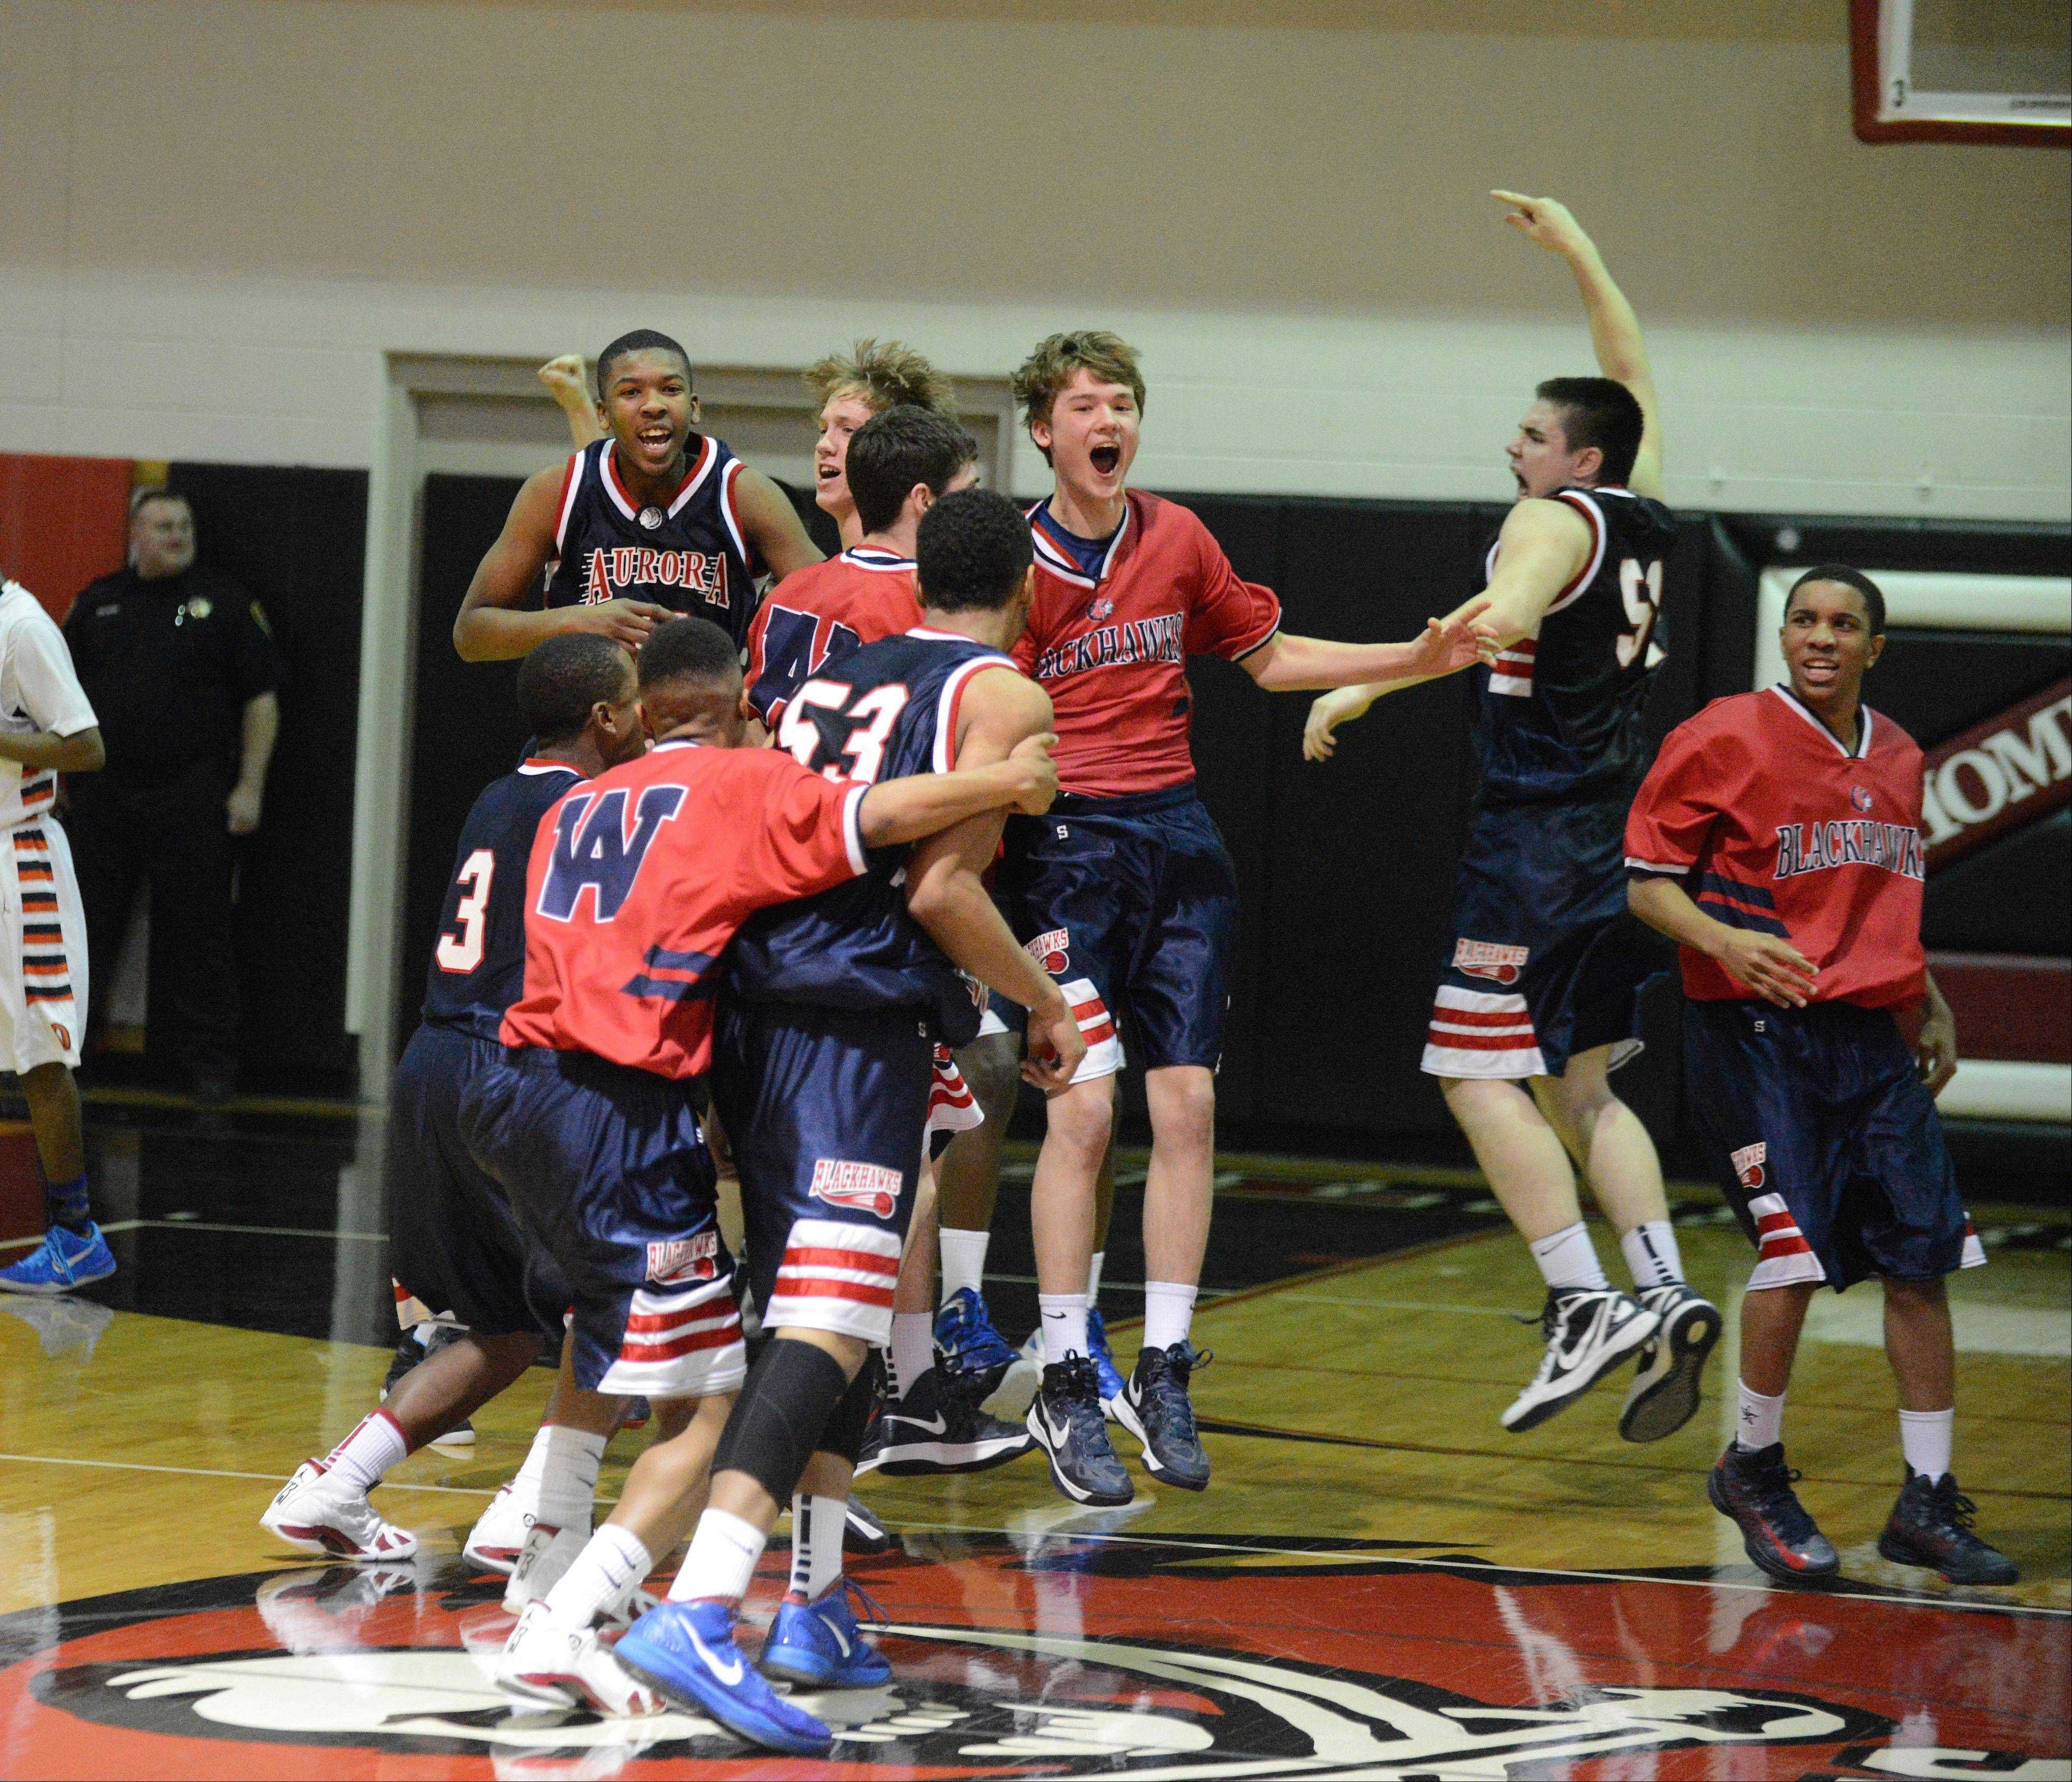 West Aurora tips No. 1 Oswego in final seconds